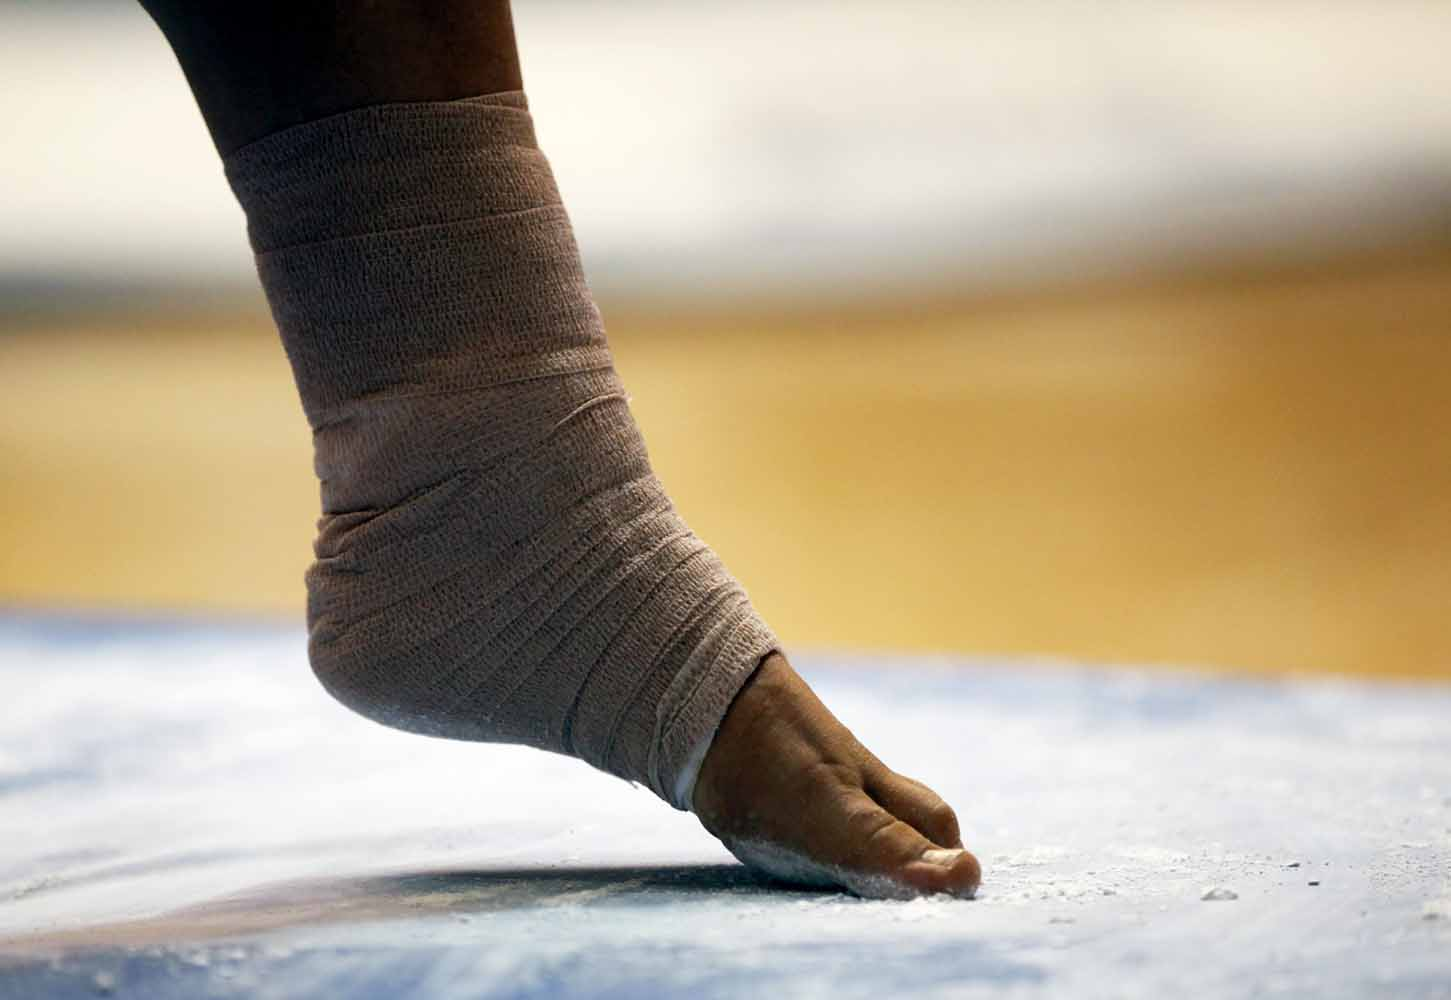 Mizzou sophomore Shauna Miller rubs her toes and the balls of her feet in chalk dust on the mat near the balance beam before her performance Friday evening, Feb. 19, 2016 in the Hearnes Center.